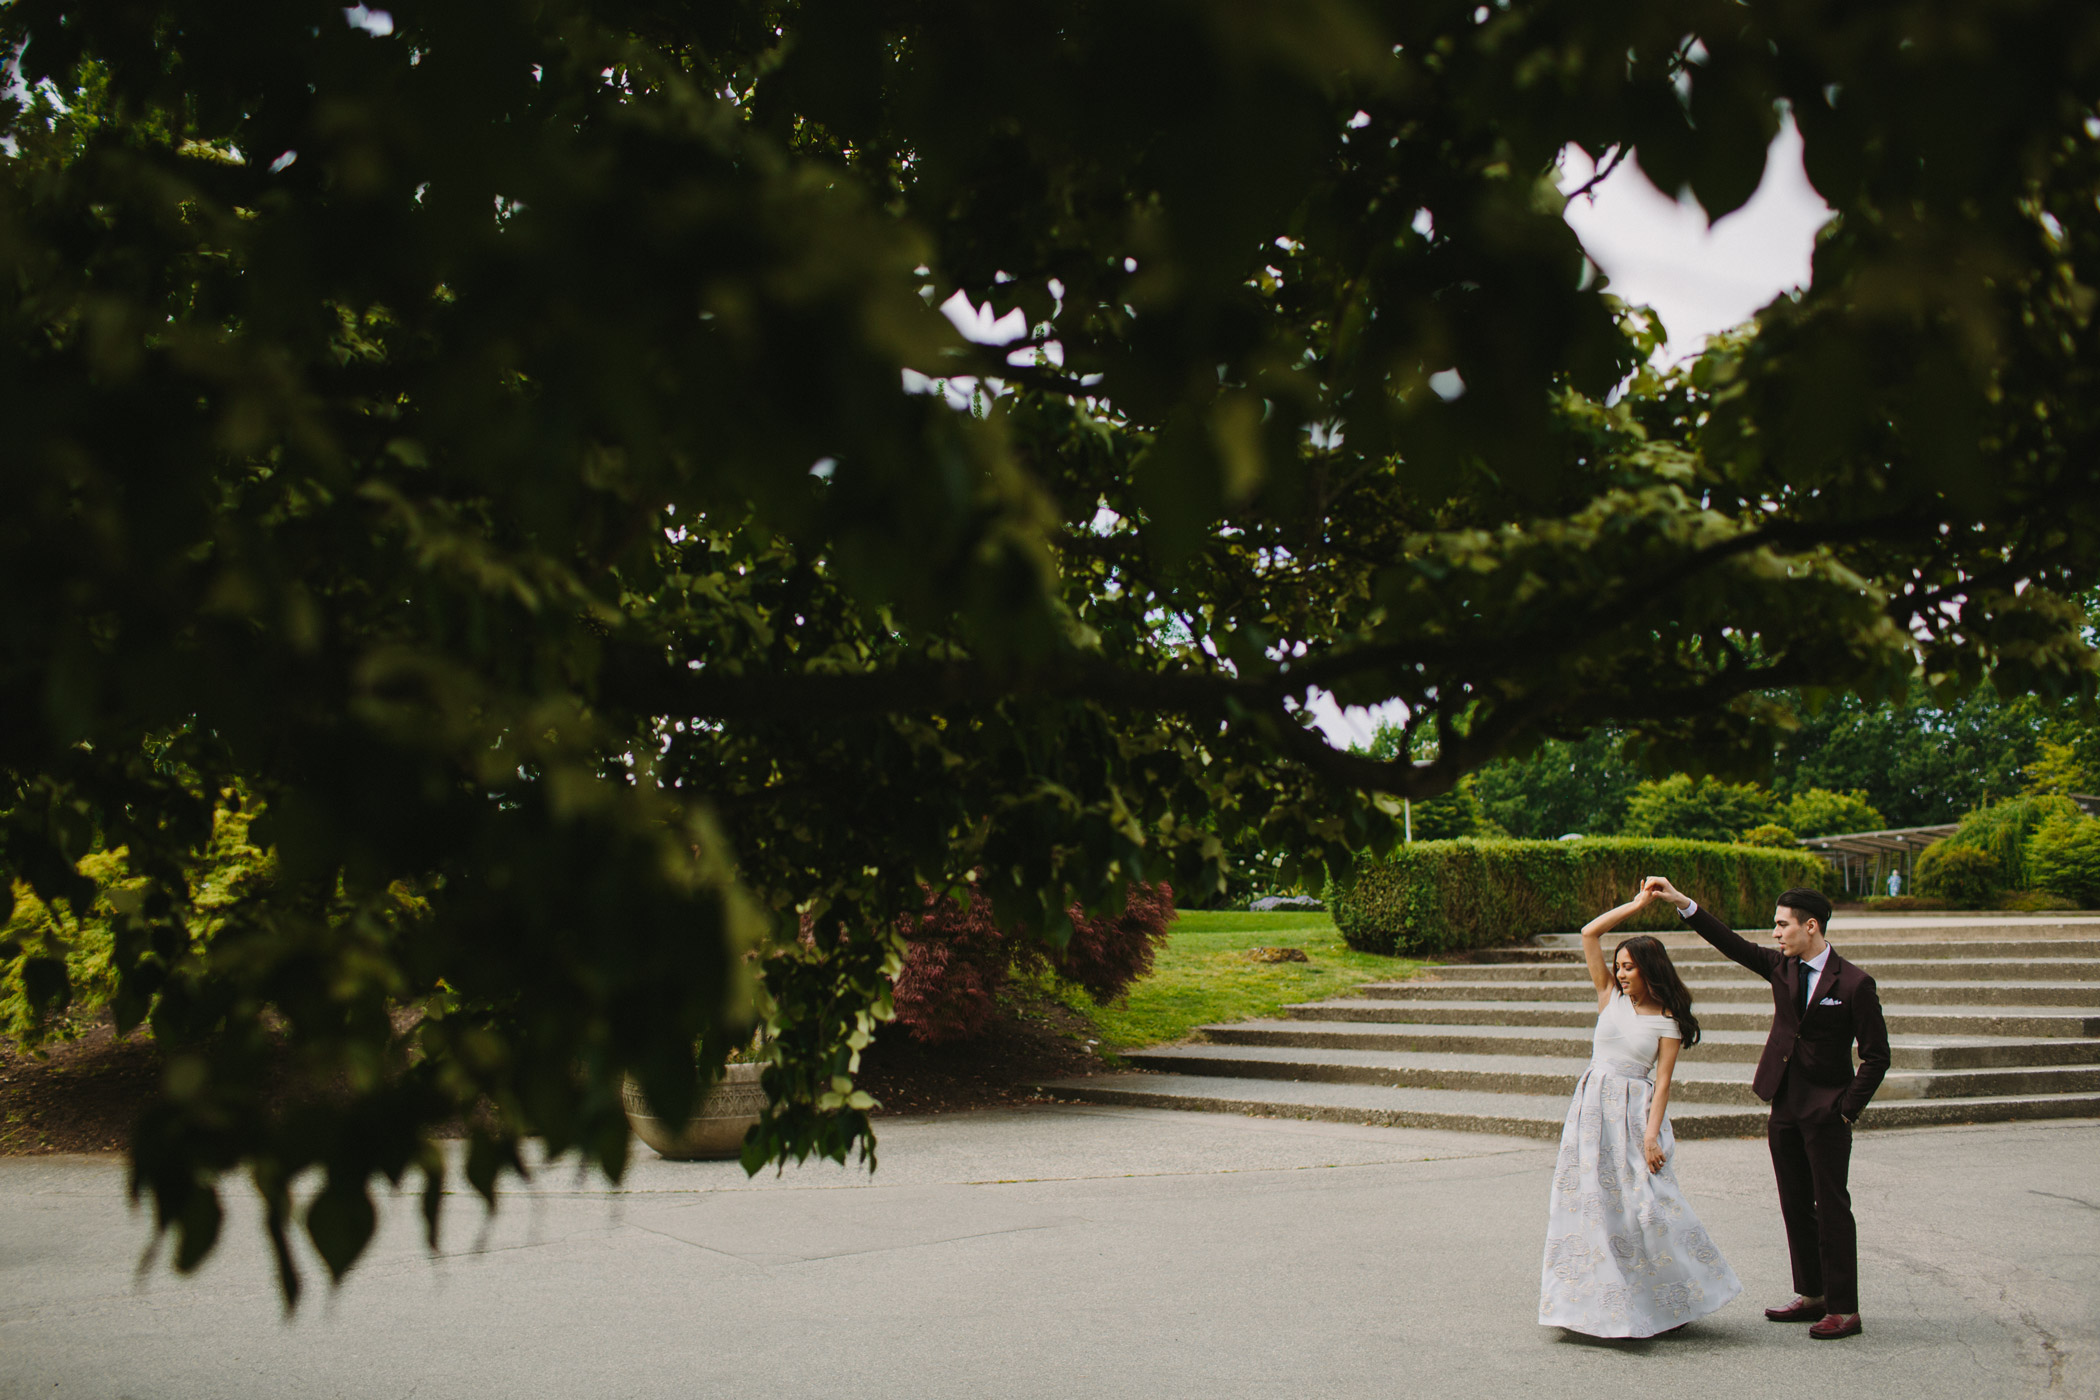 Queen Elizabeth Park Wedding